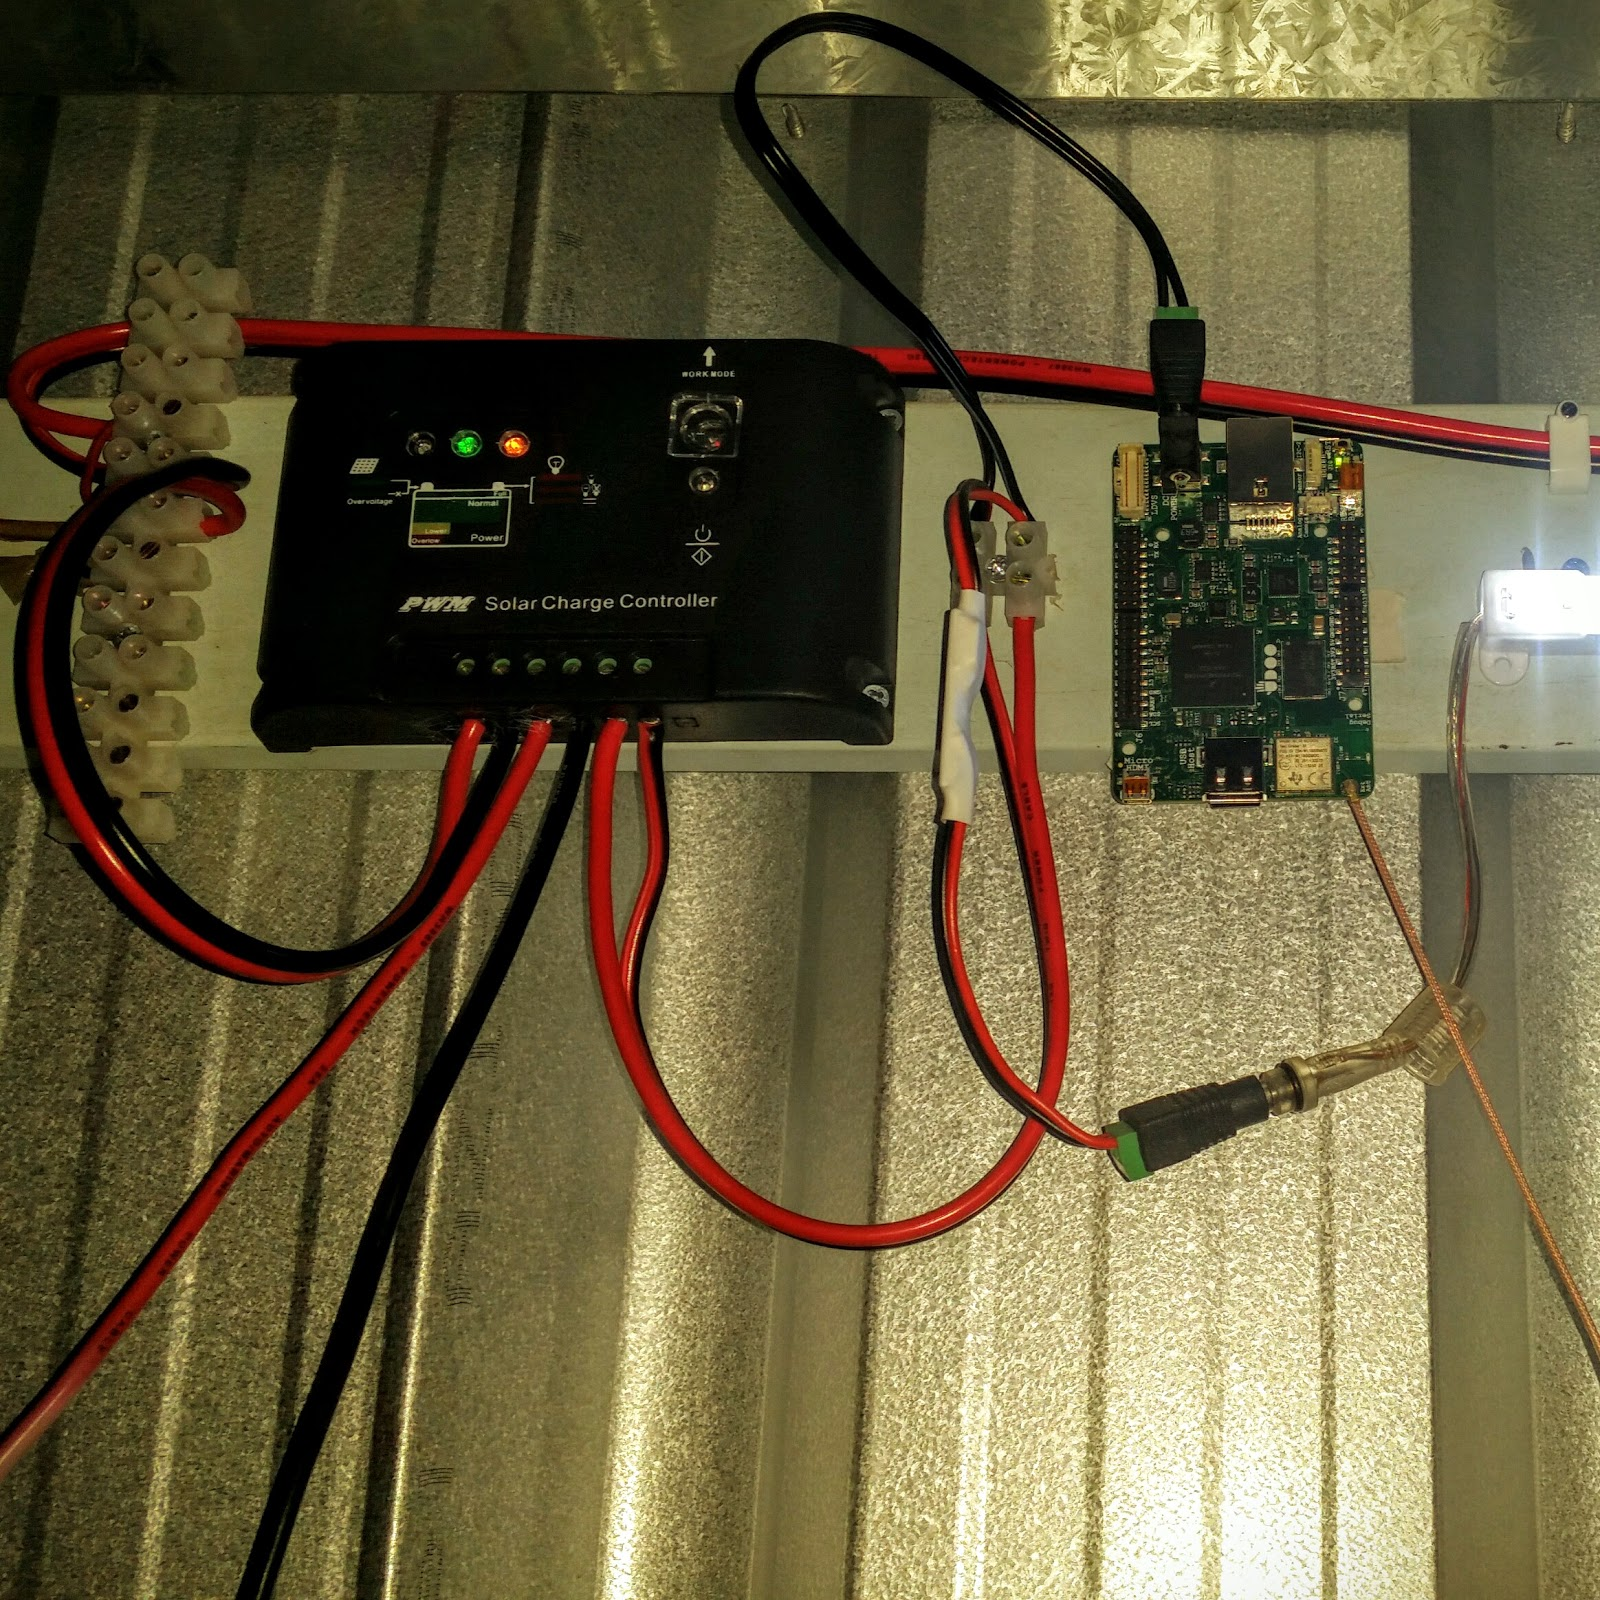 Confused Life Reloaded The Shed Solar Project With Udoo Neo How To Wire A For Electricity Wiring So I Have Hooked Up Tplink External Antenna And Placed Mods An There More Related Posts Follow